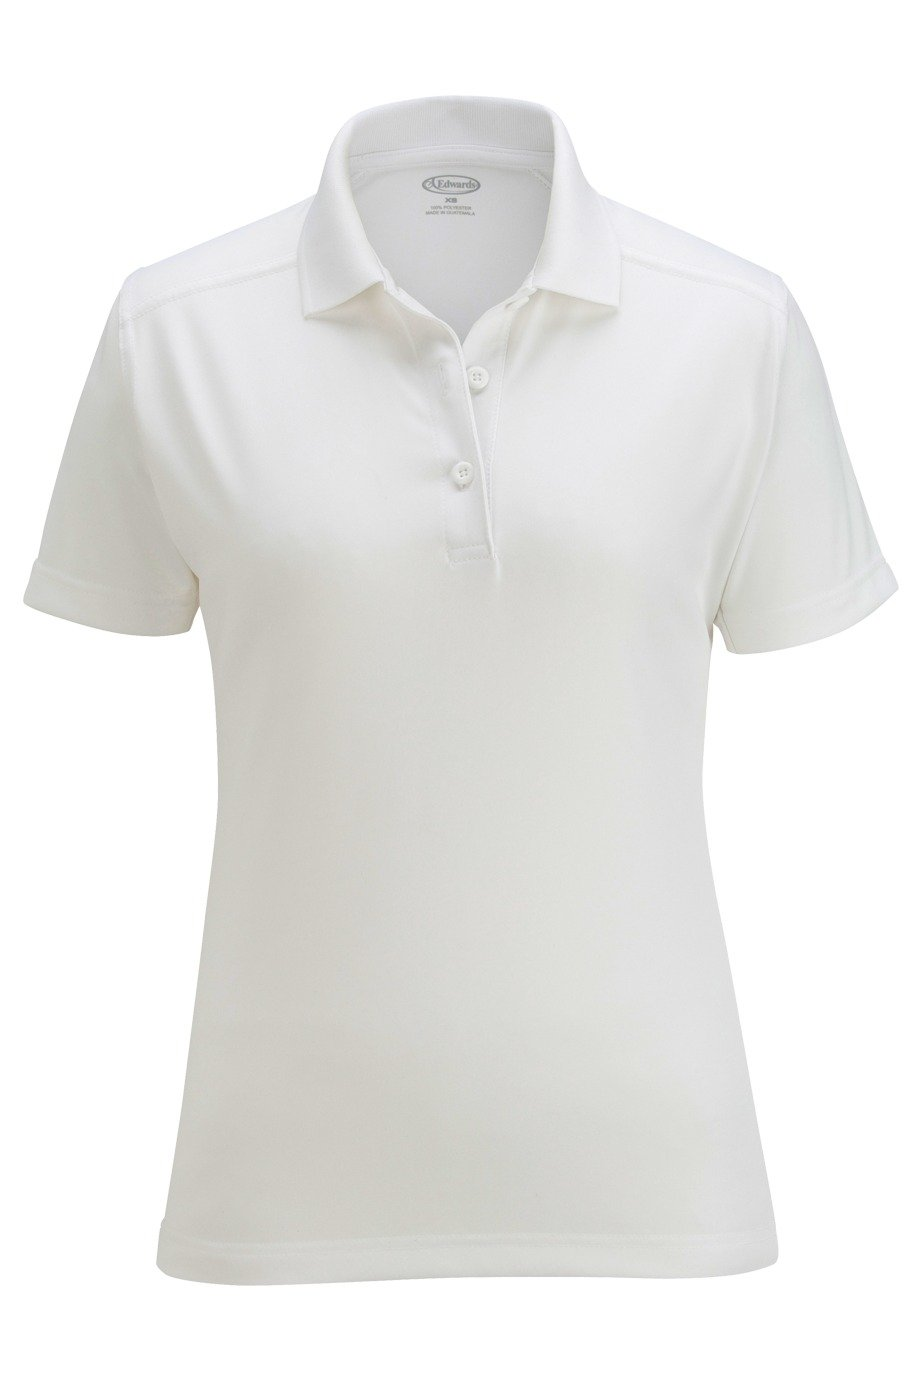 Edwards Ladies' Snag-Proof Short Sleeve Polo